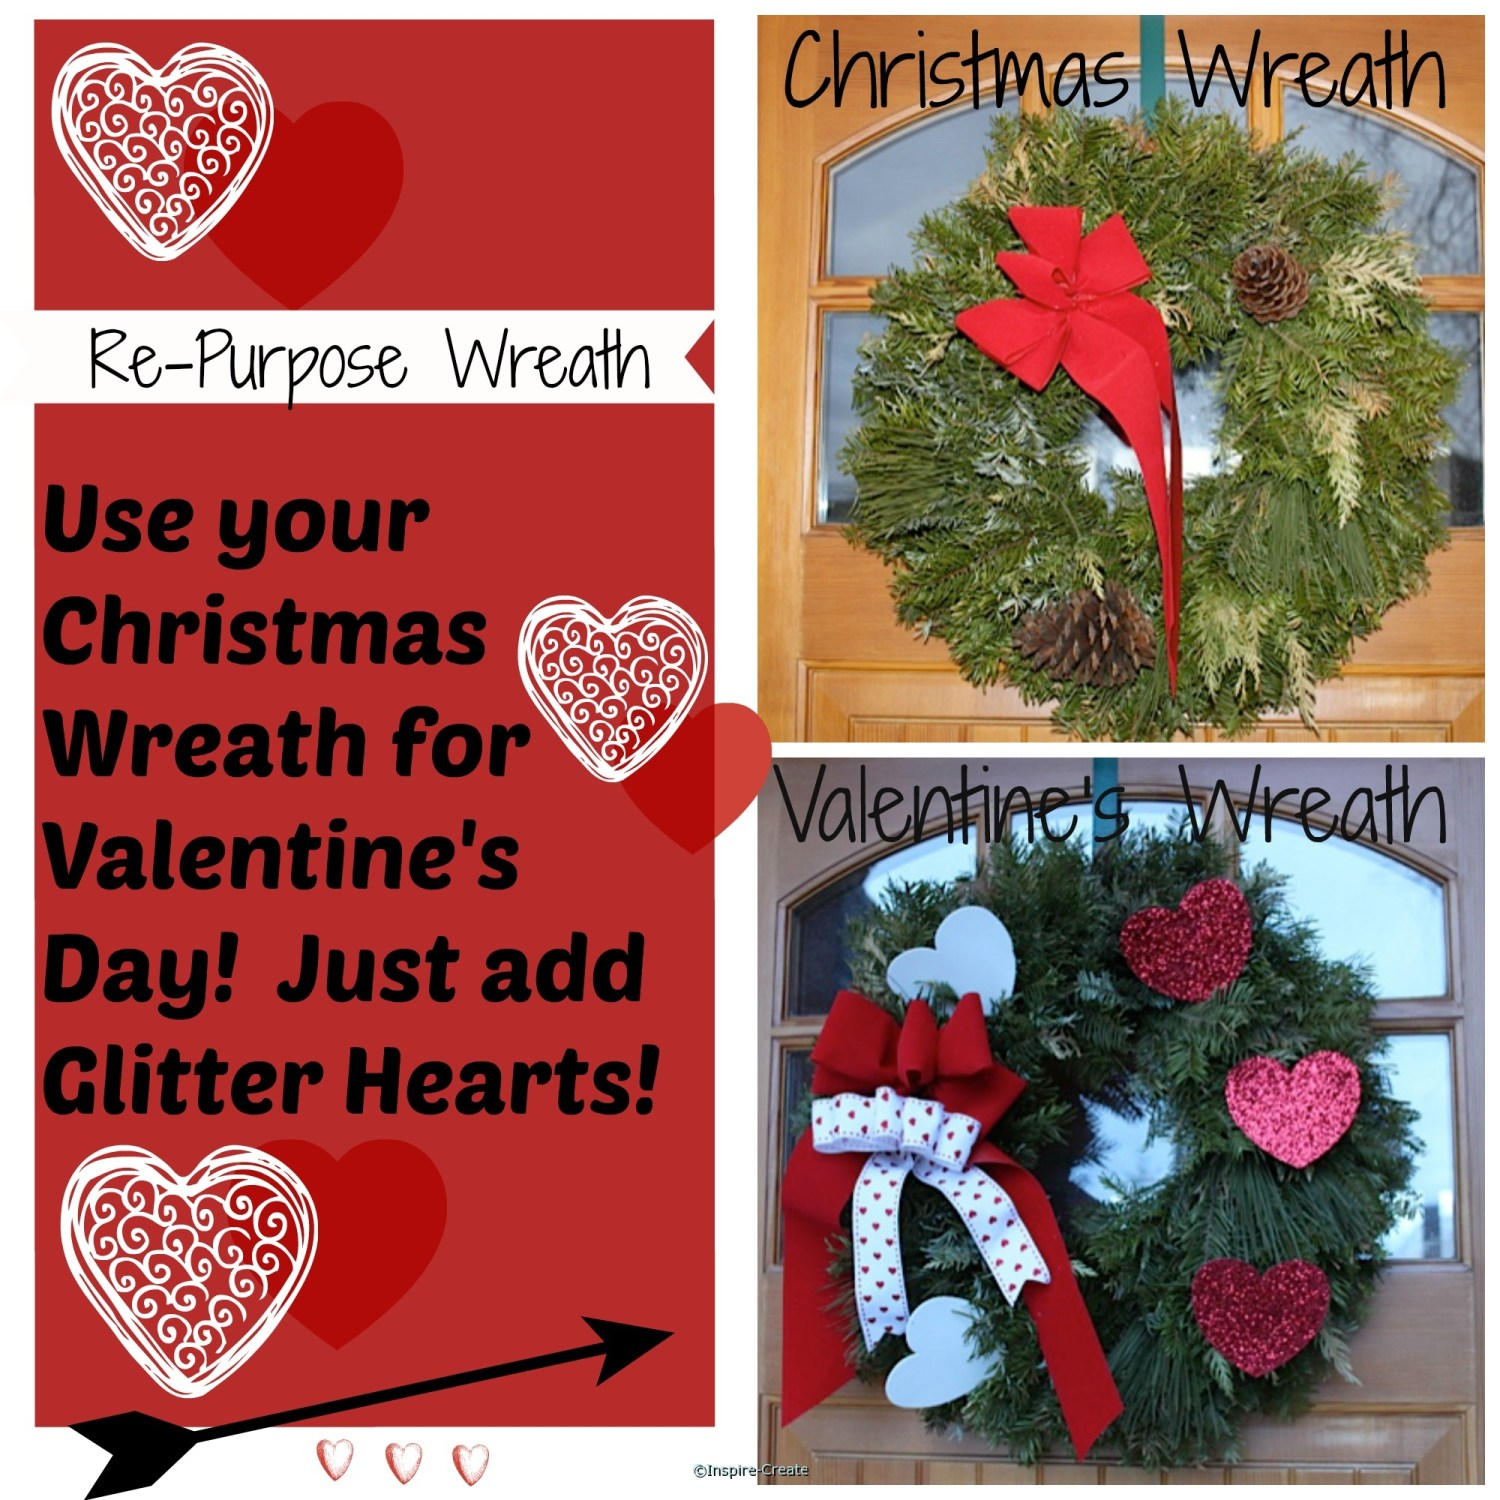 Re-Purpose Holiday Wreath! Remove Pine Cones and add Glitter Hearts for Valentine's Day!